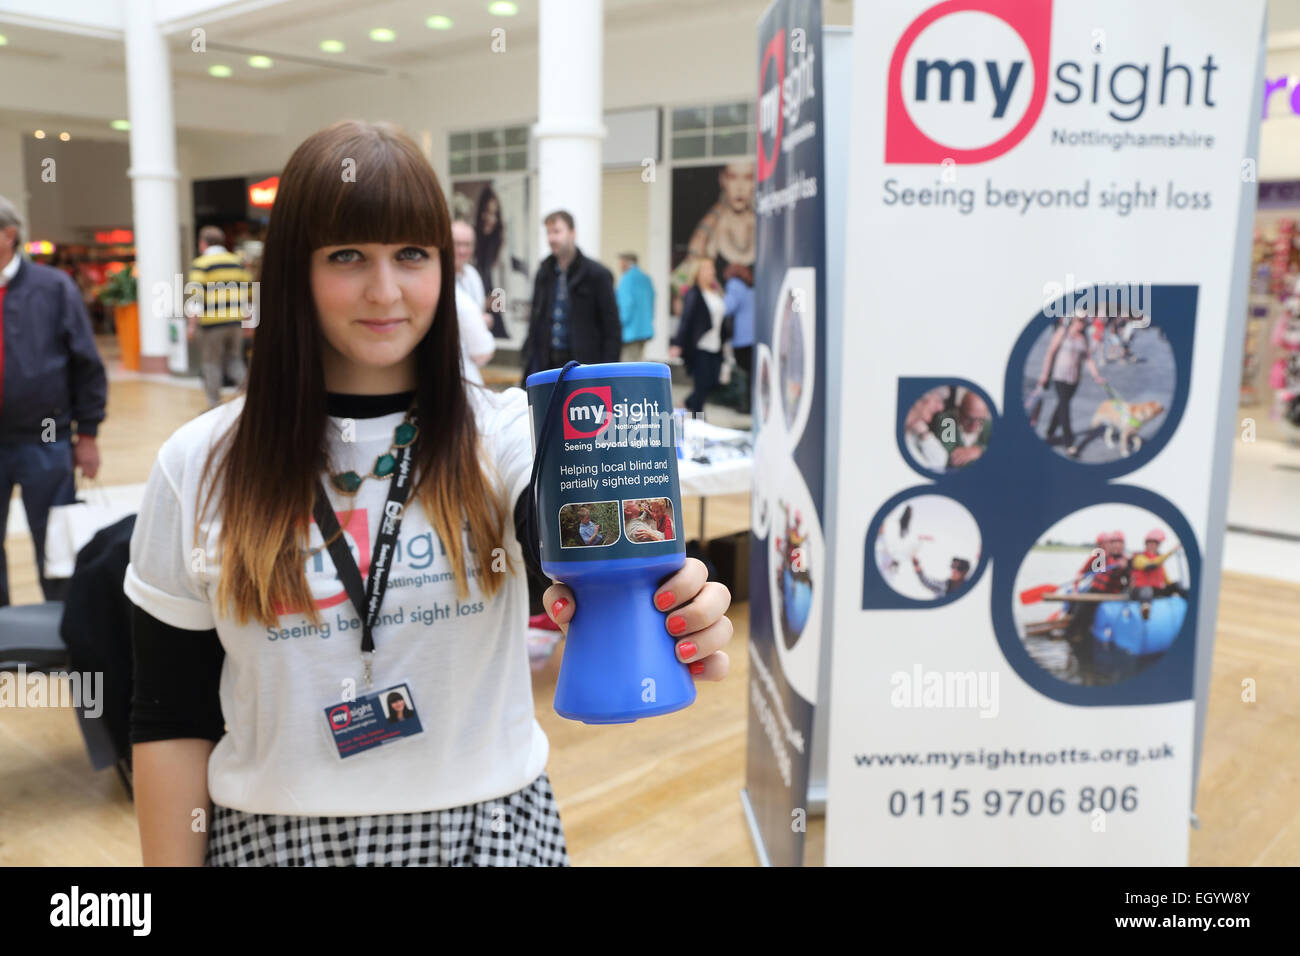 Stall promoting products and services for people with visual impairments, run by the charity Mysight in Nottingham - Stock Image